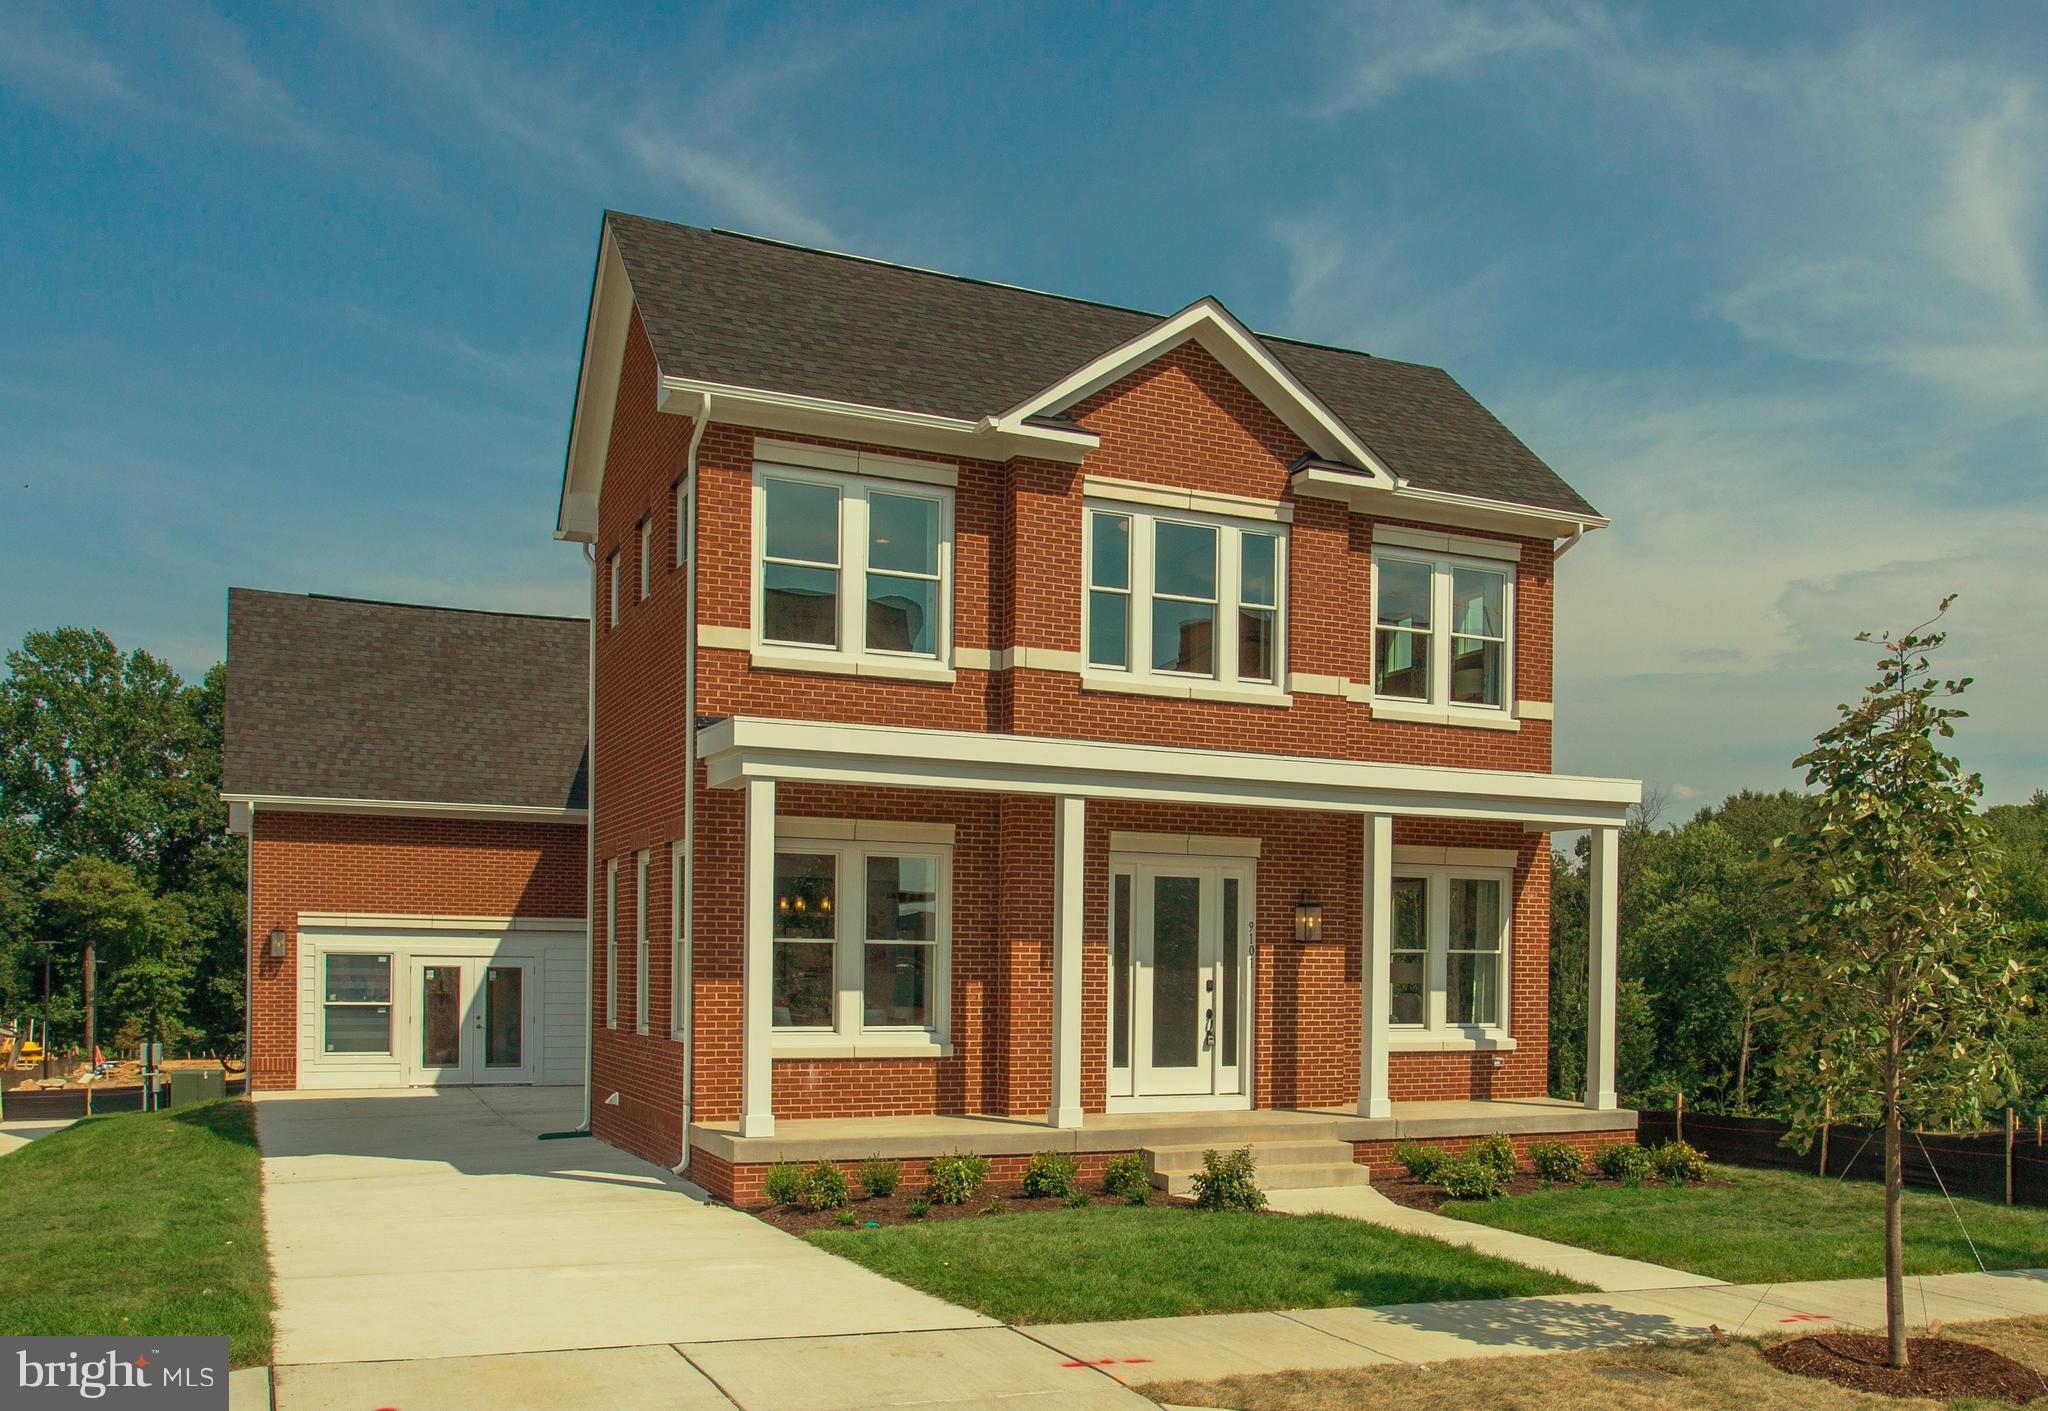 """STUNNING BRAND NEW VAN METRE SINGLE FAMILY HOME FEATURING AN OPEN CONCEPT W/ AN IMPRESSIVE GOURMET KITCHEN, 42"""" CABINETS, GRANITE, AND STAINLESS STEEL APPLIANCES. 4 TO 5 BEDROOMS, ELEGANT MASTER SUITE. STUNNING 10 FT CEILINGS ON MAIN LVL. PICTURES OF MODEL, FLOOR PLANS AND OPTIONS WILL VARY."""